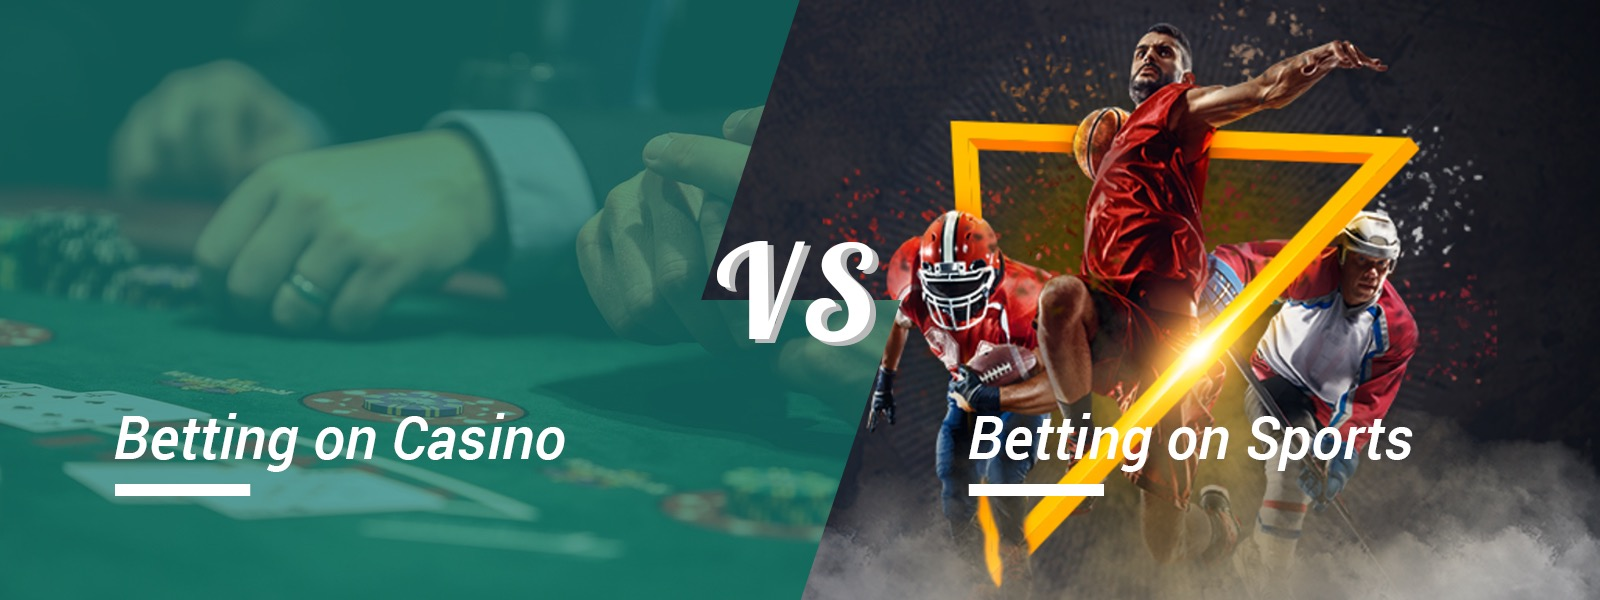 Which Do You Preferred? Betting On Casino Or Sports?